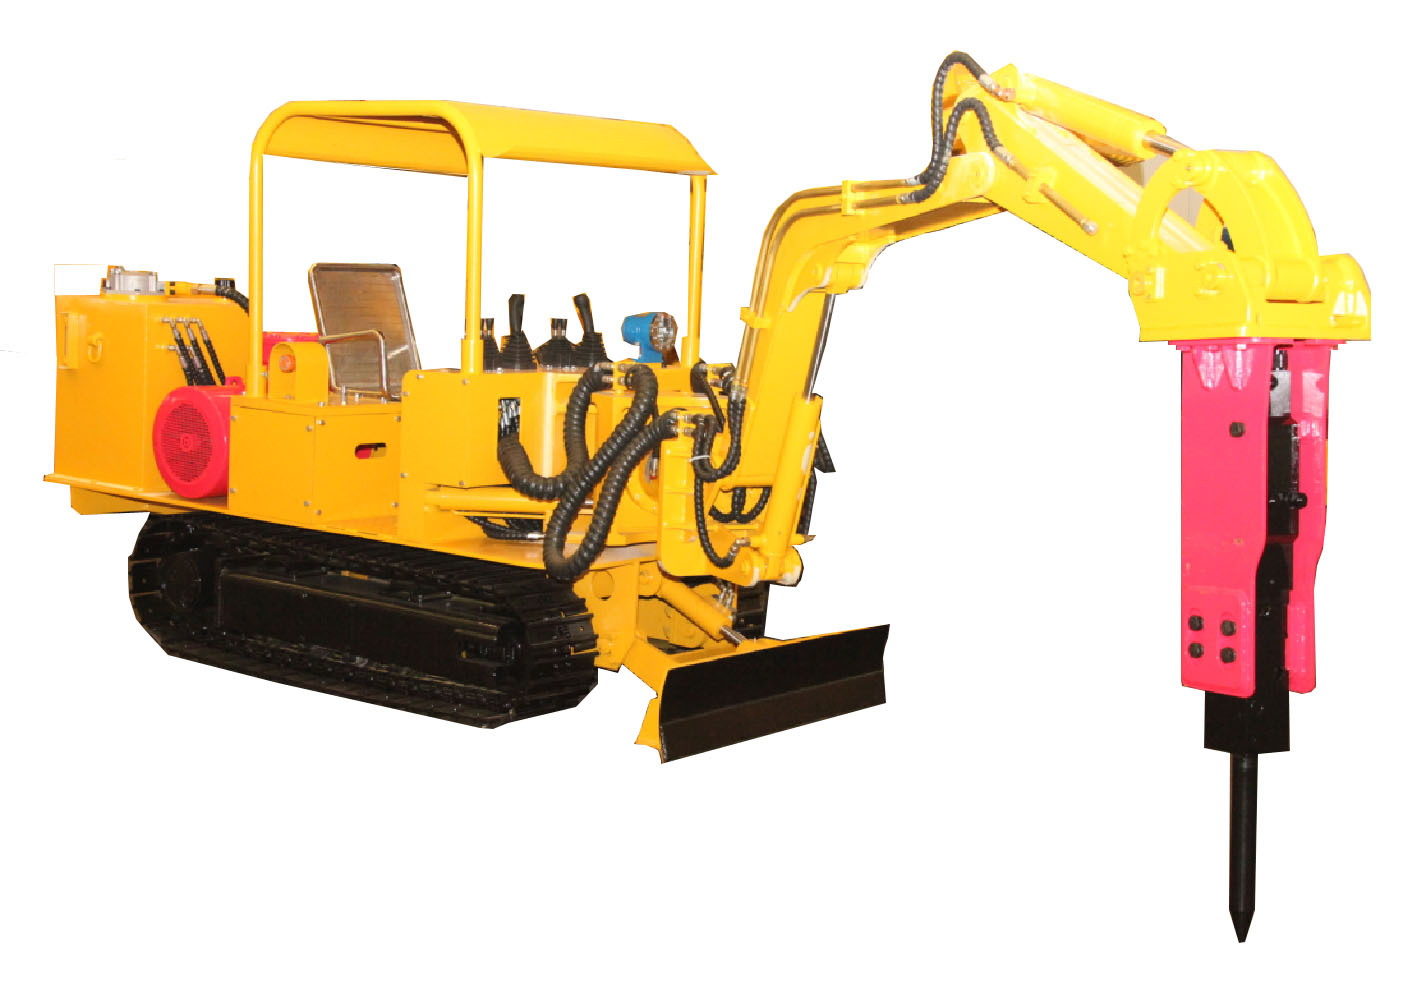 WPZ30400 Underground Roadway Maintenance Machine with gethering breaking and raising functions